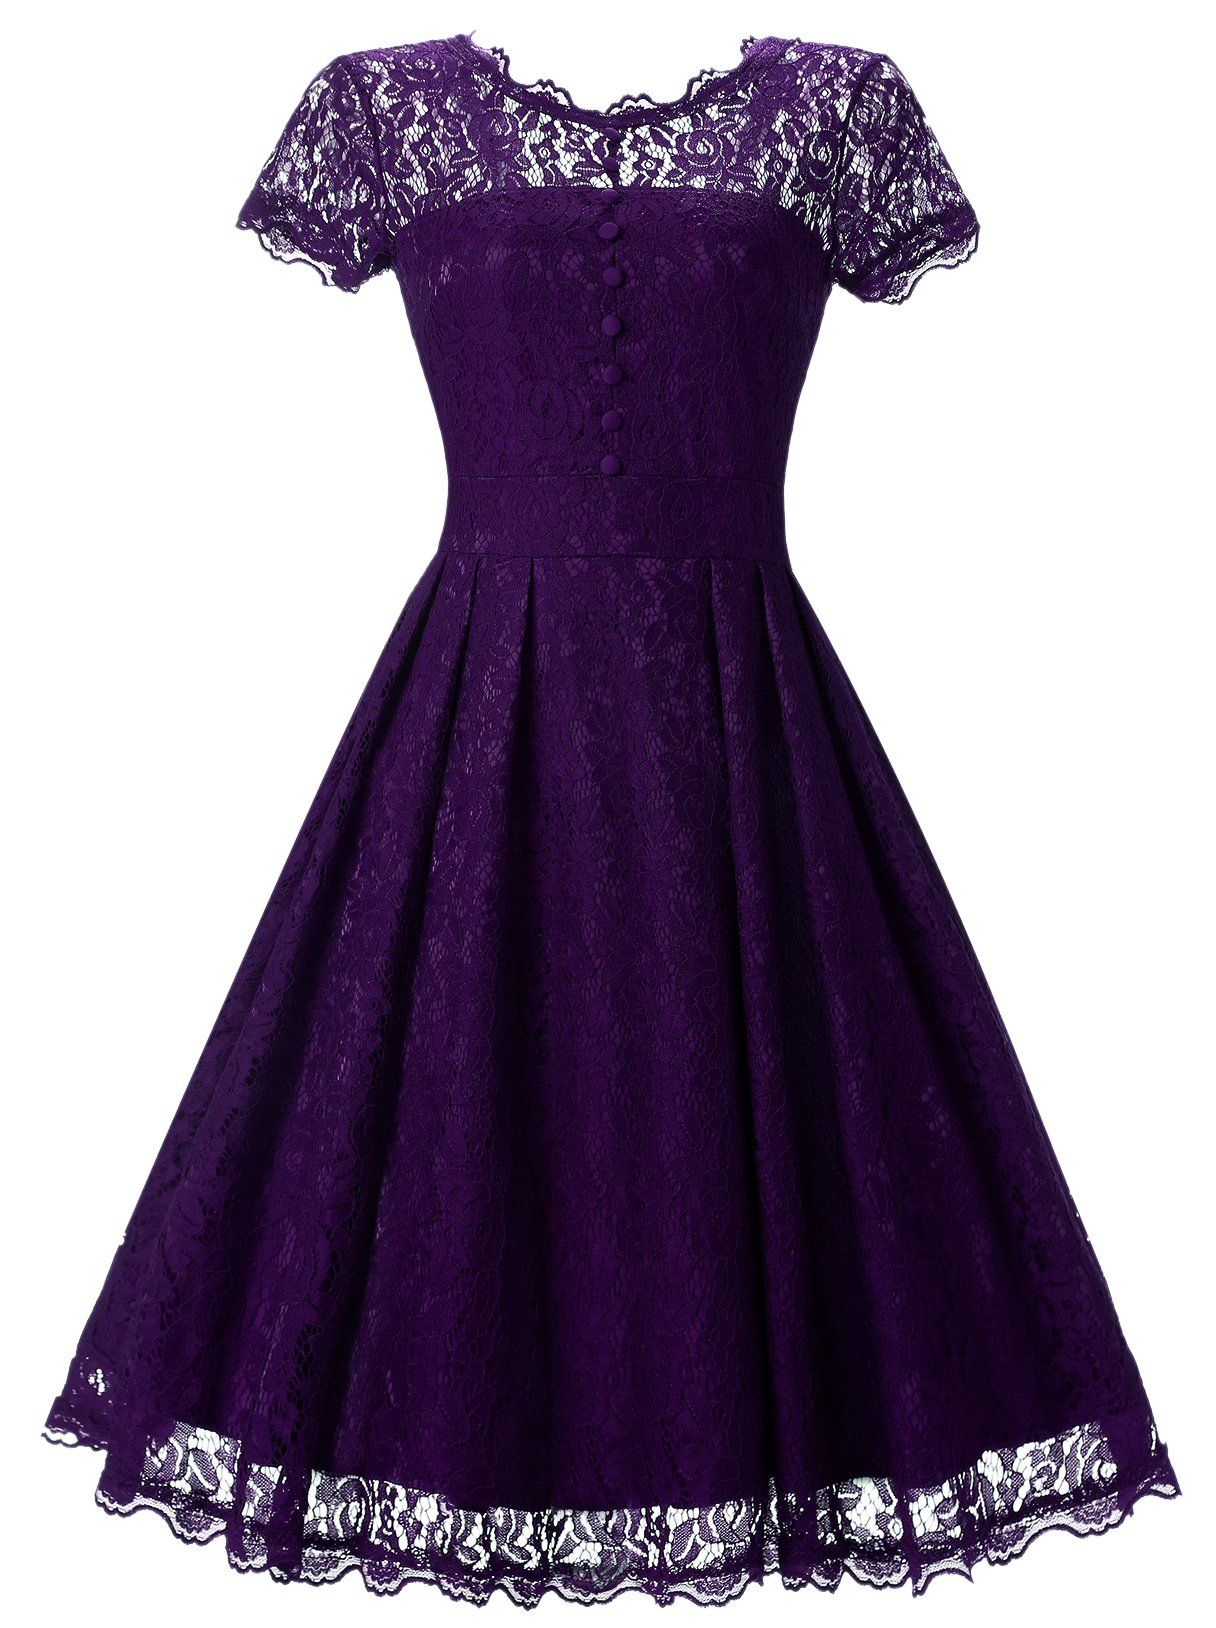 5d9c98c05596 Angerella Homecoming Dresses Womens Party Wedding Summer Prom Bridesmaid  Dress >>> Read more at the image link. (This is an affiliate link)